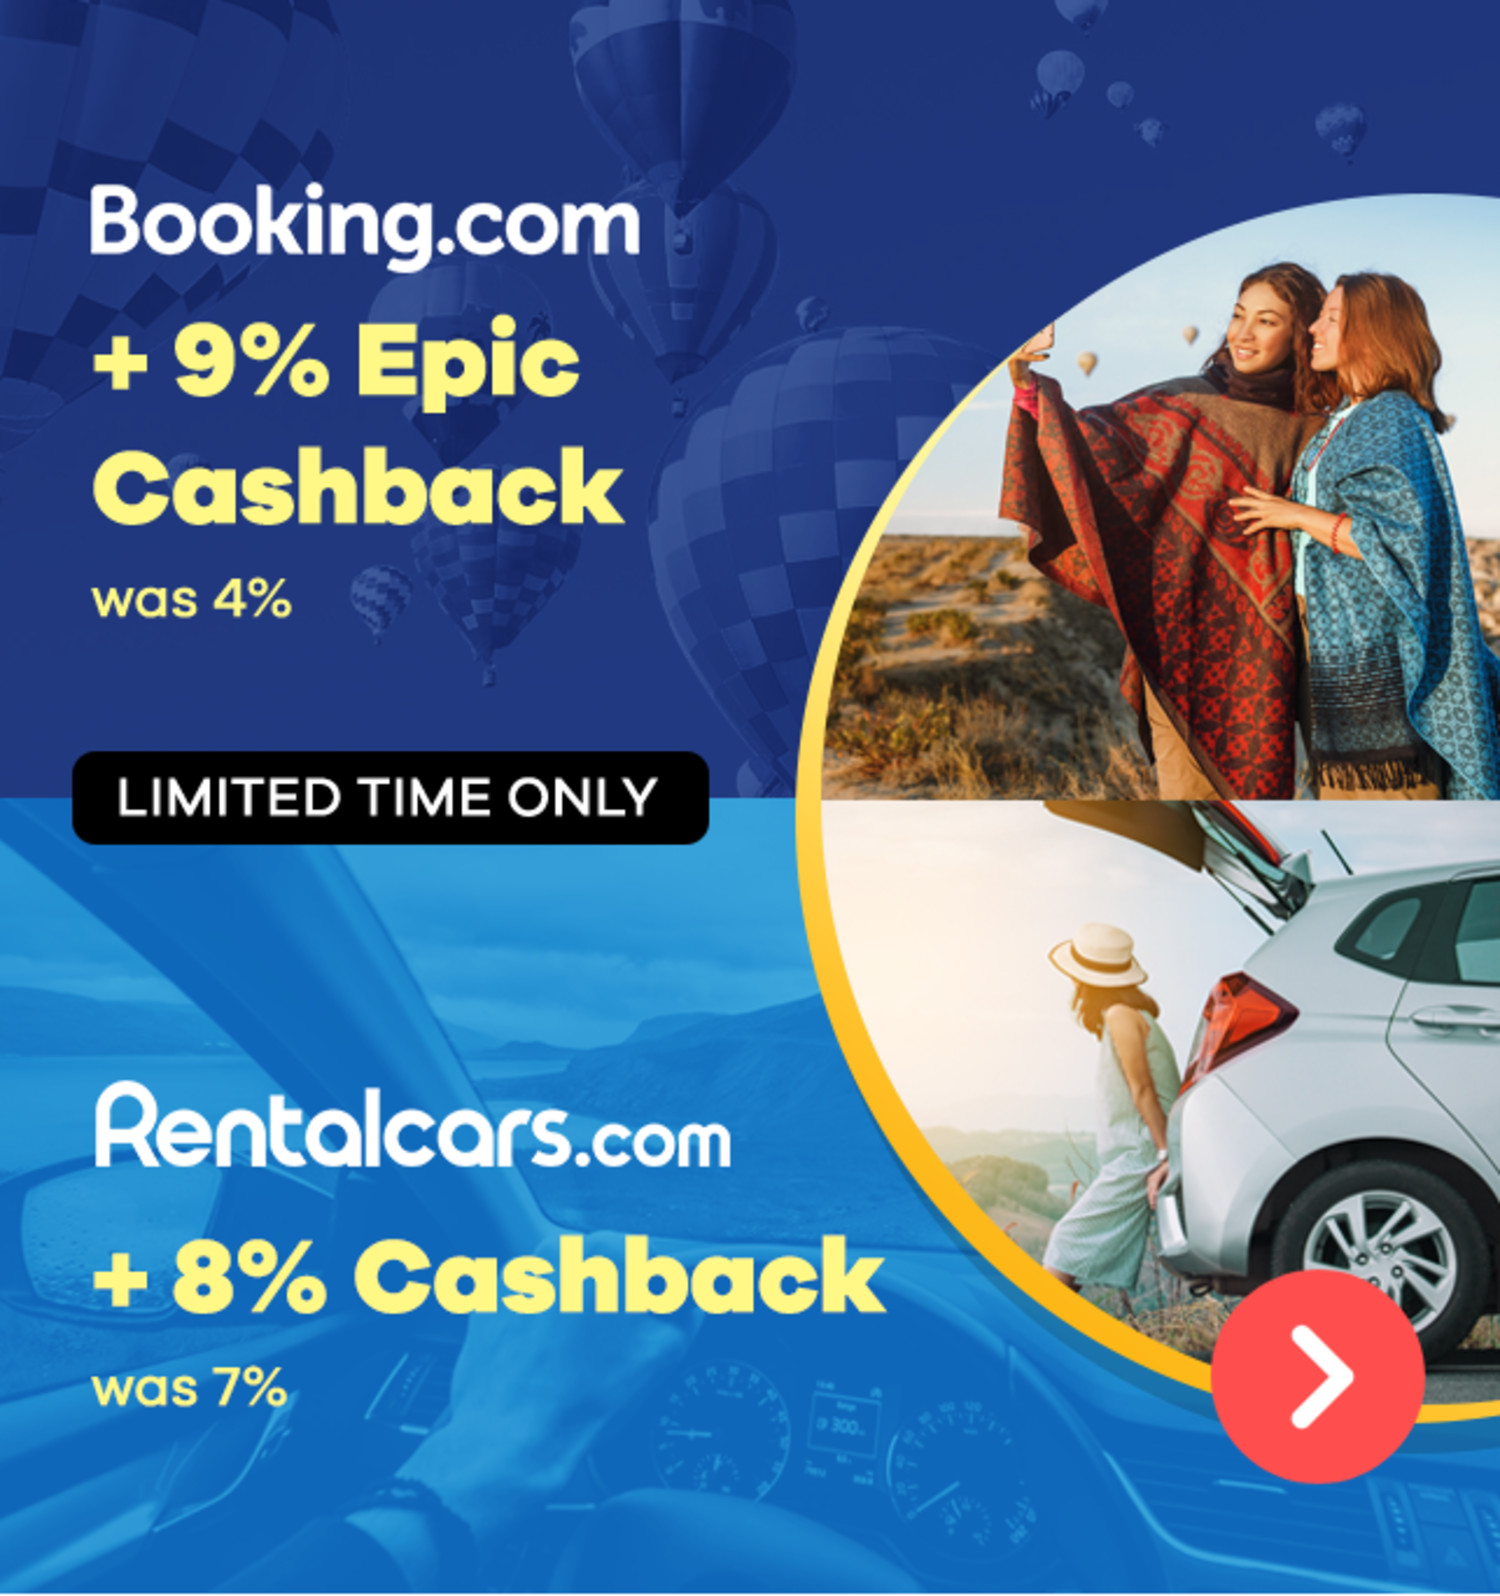 Booking.com - 9% Epic Cashback (February 2020)